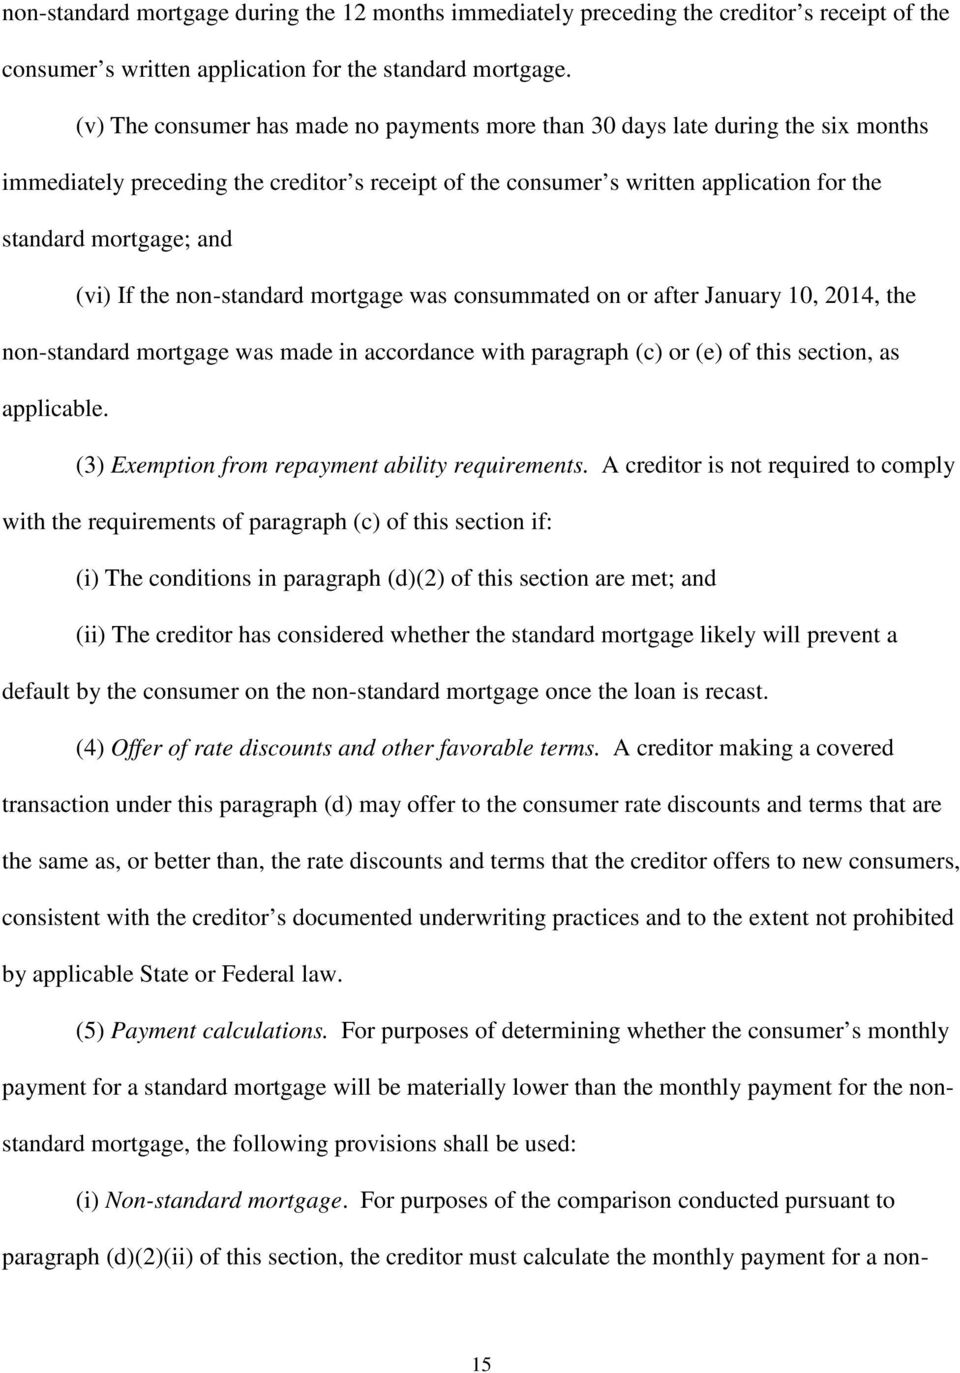 (vi) If the non-standard mortgage was consummated on or after January 10, 2014, the non-standard mortgage was made in accordance with paragraph (c) or (e) of this section, as applicable.